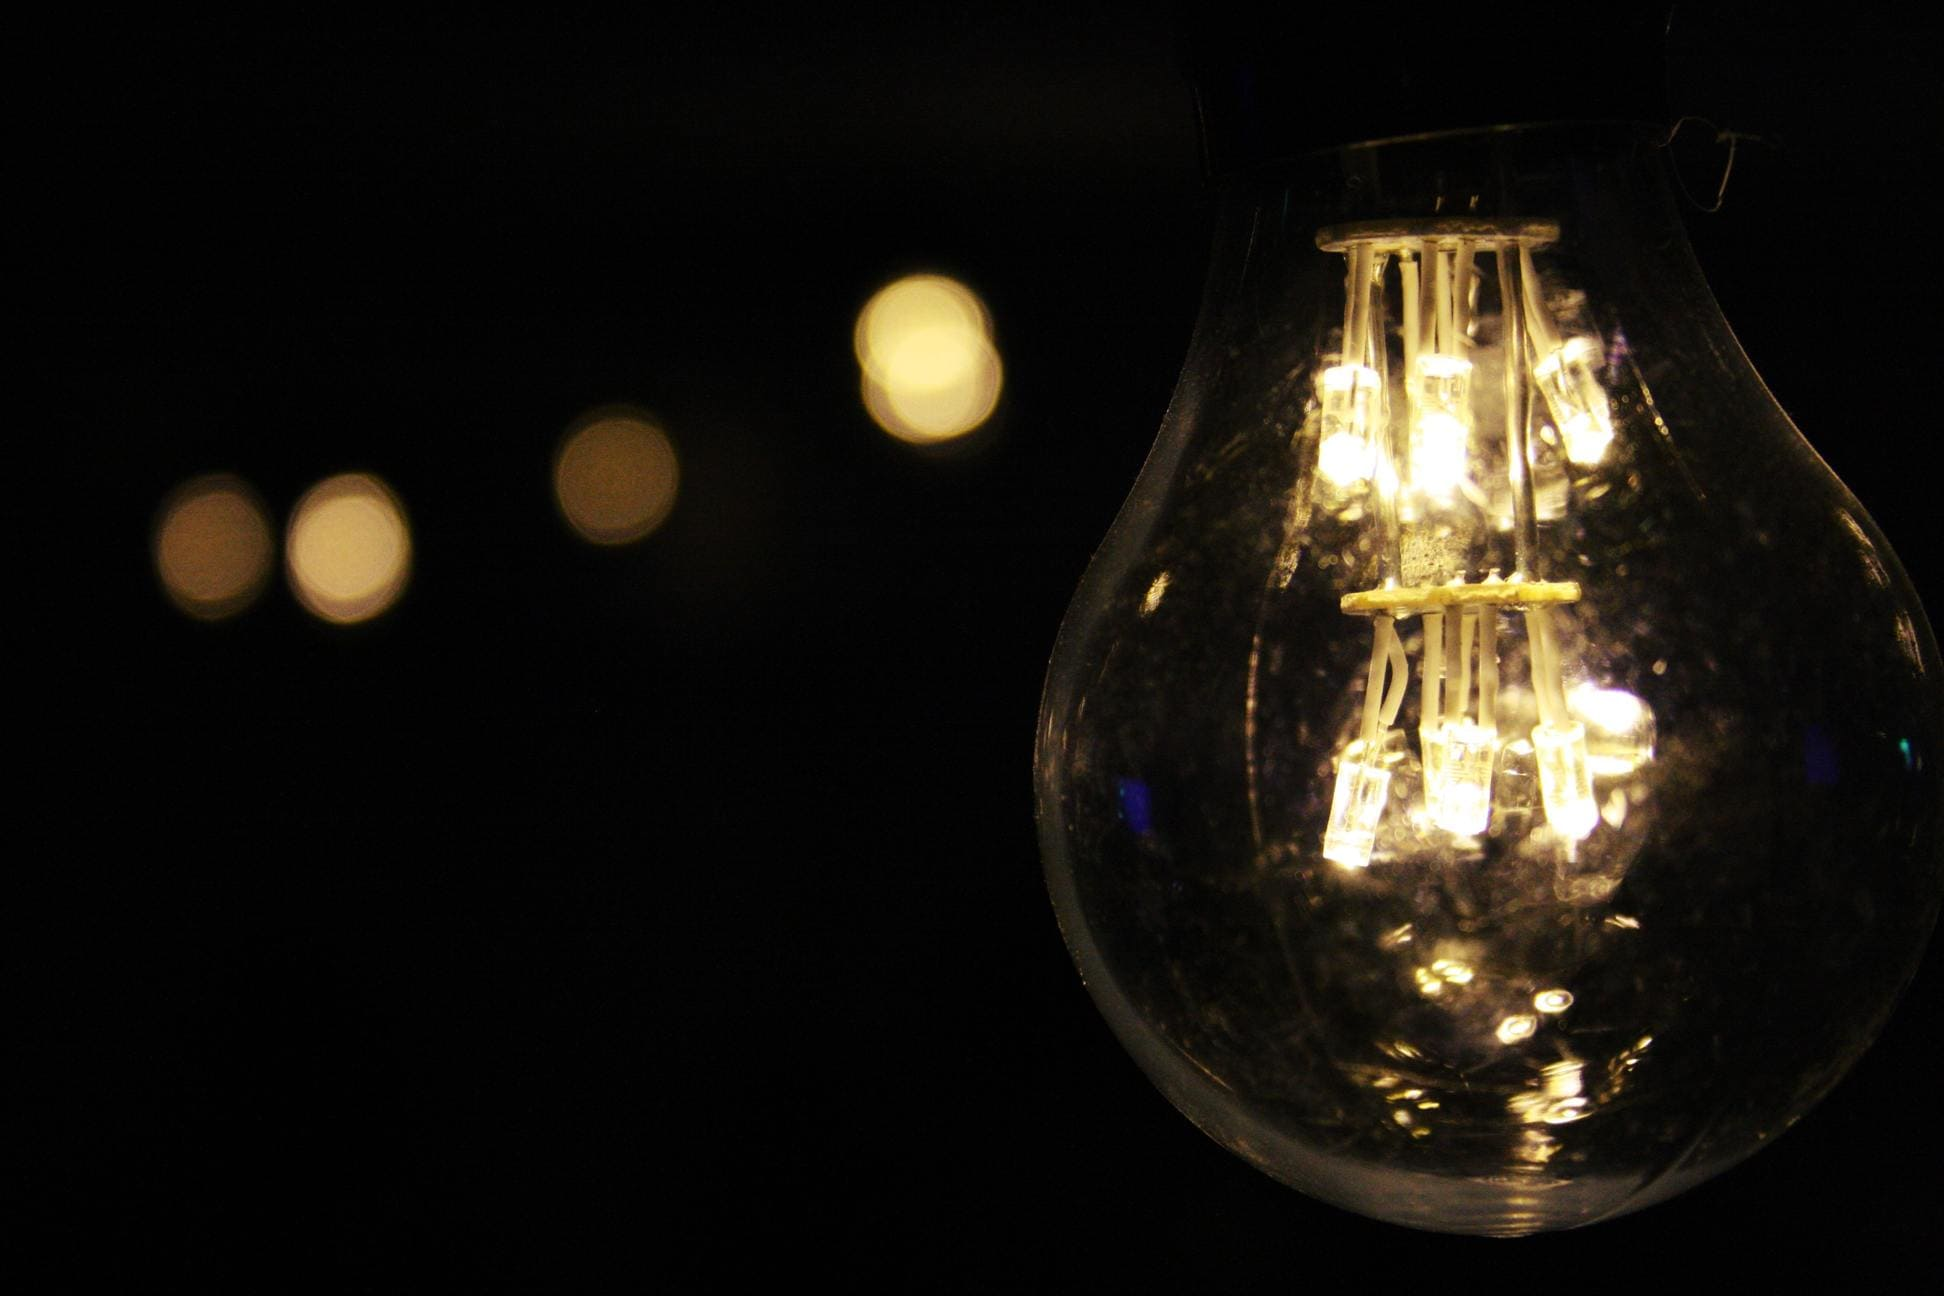 close up of a light bulb at night with blurred light behind